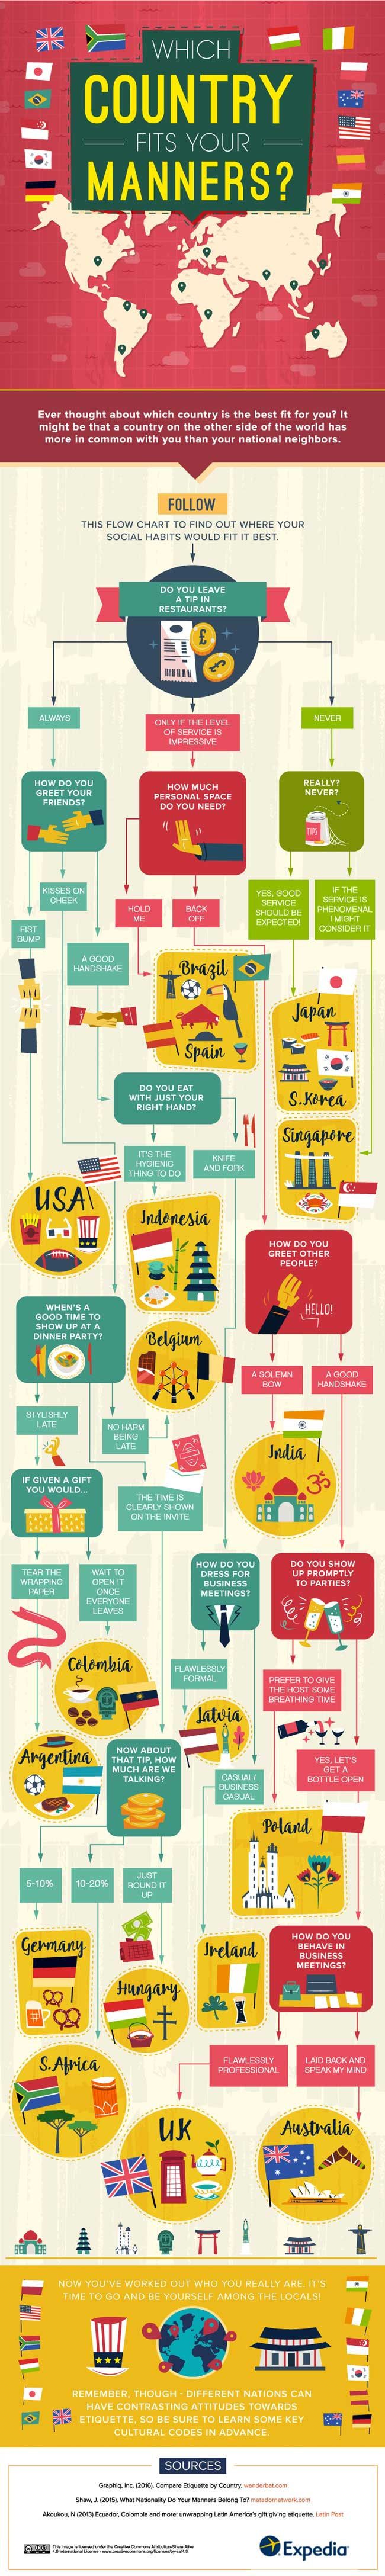 What Country Fits Your Manners?